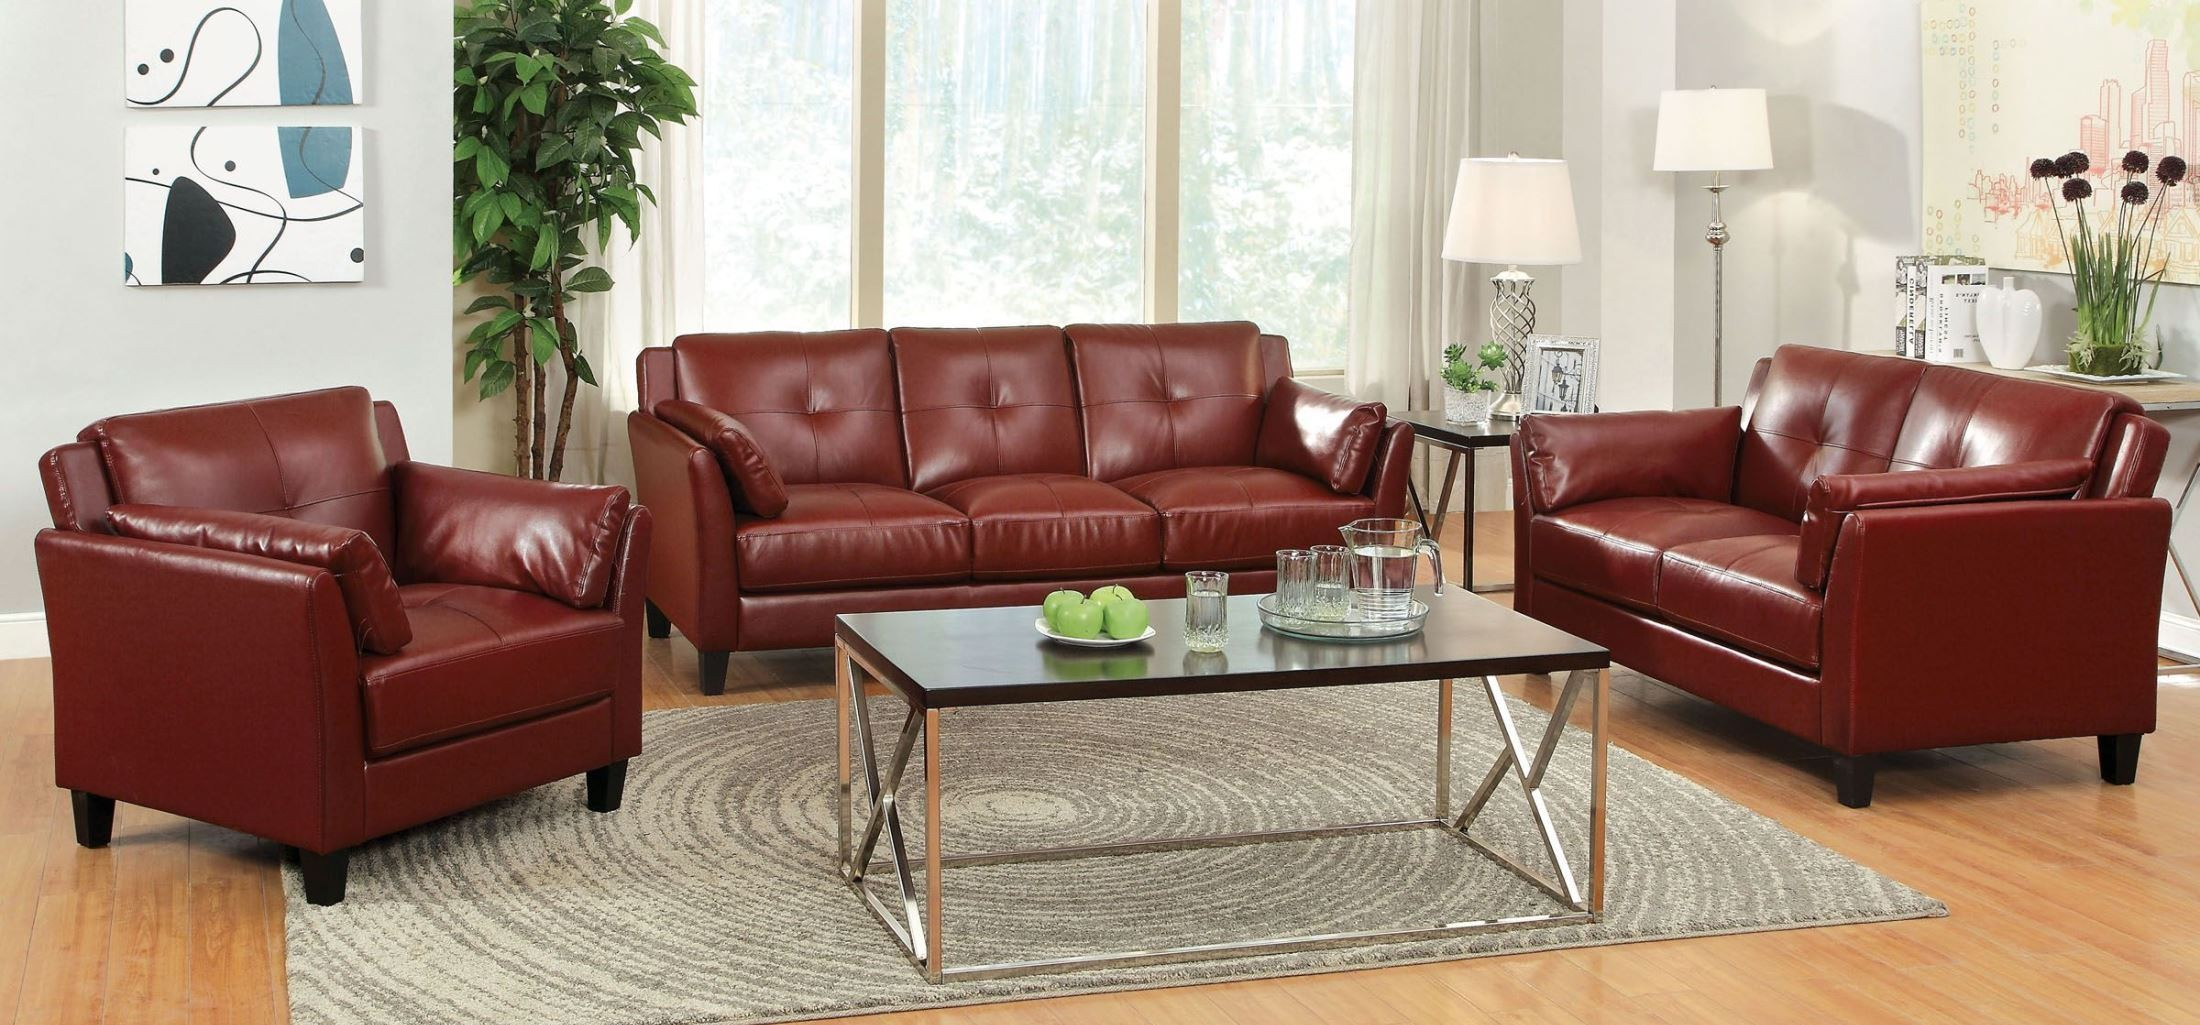 Pierre red living room set from furniture of america for Red living room set